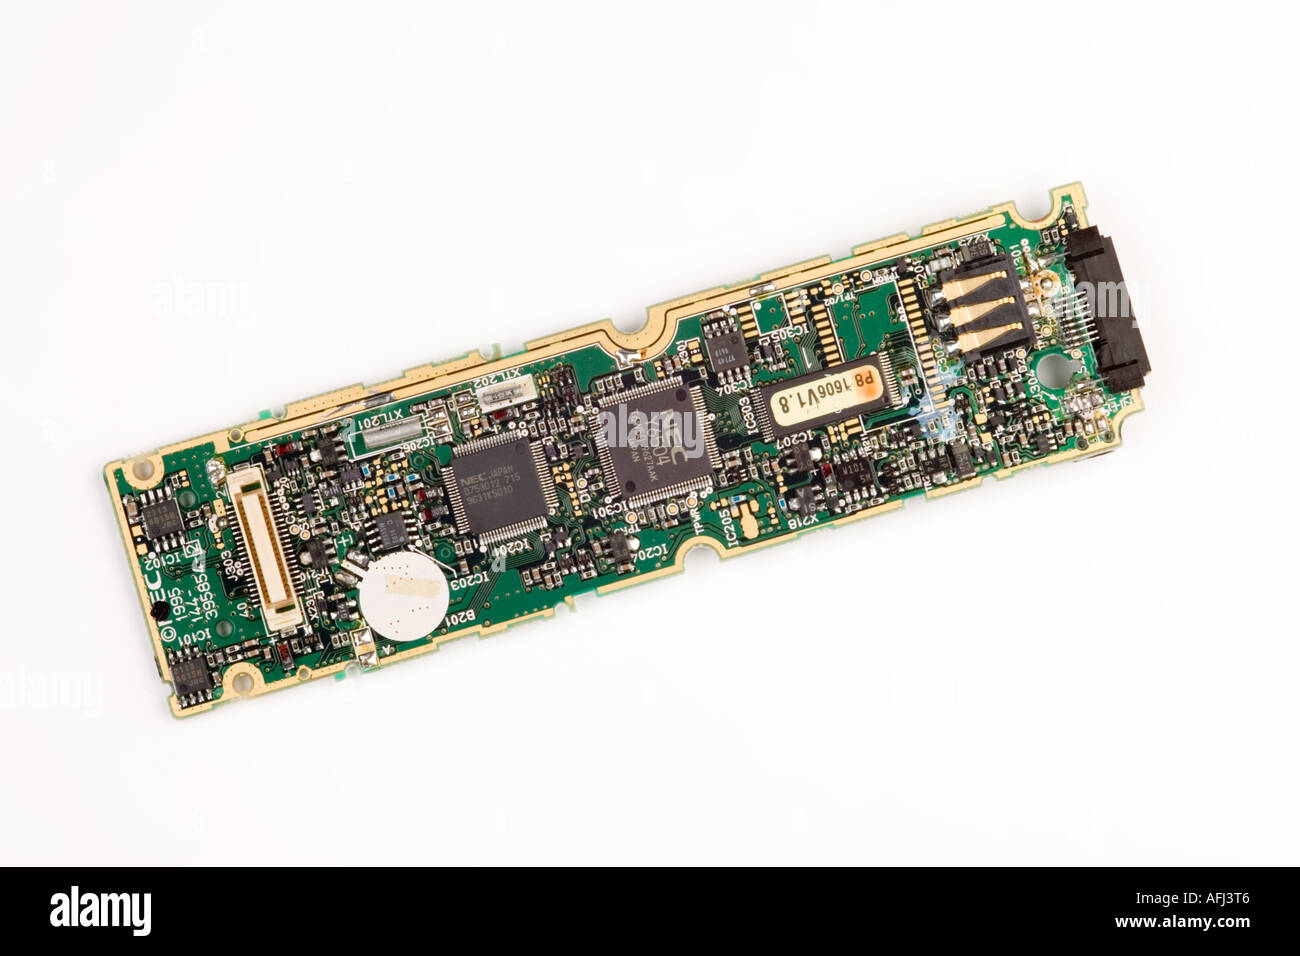 Surface Mount Technology Smt Stock Photos Circuit Board From A Nokia 3310 Mobile Phone Photo Picture And Image